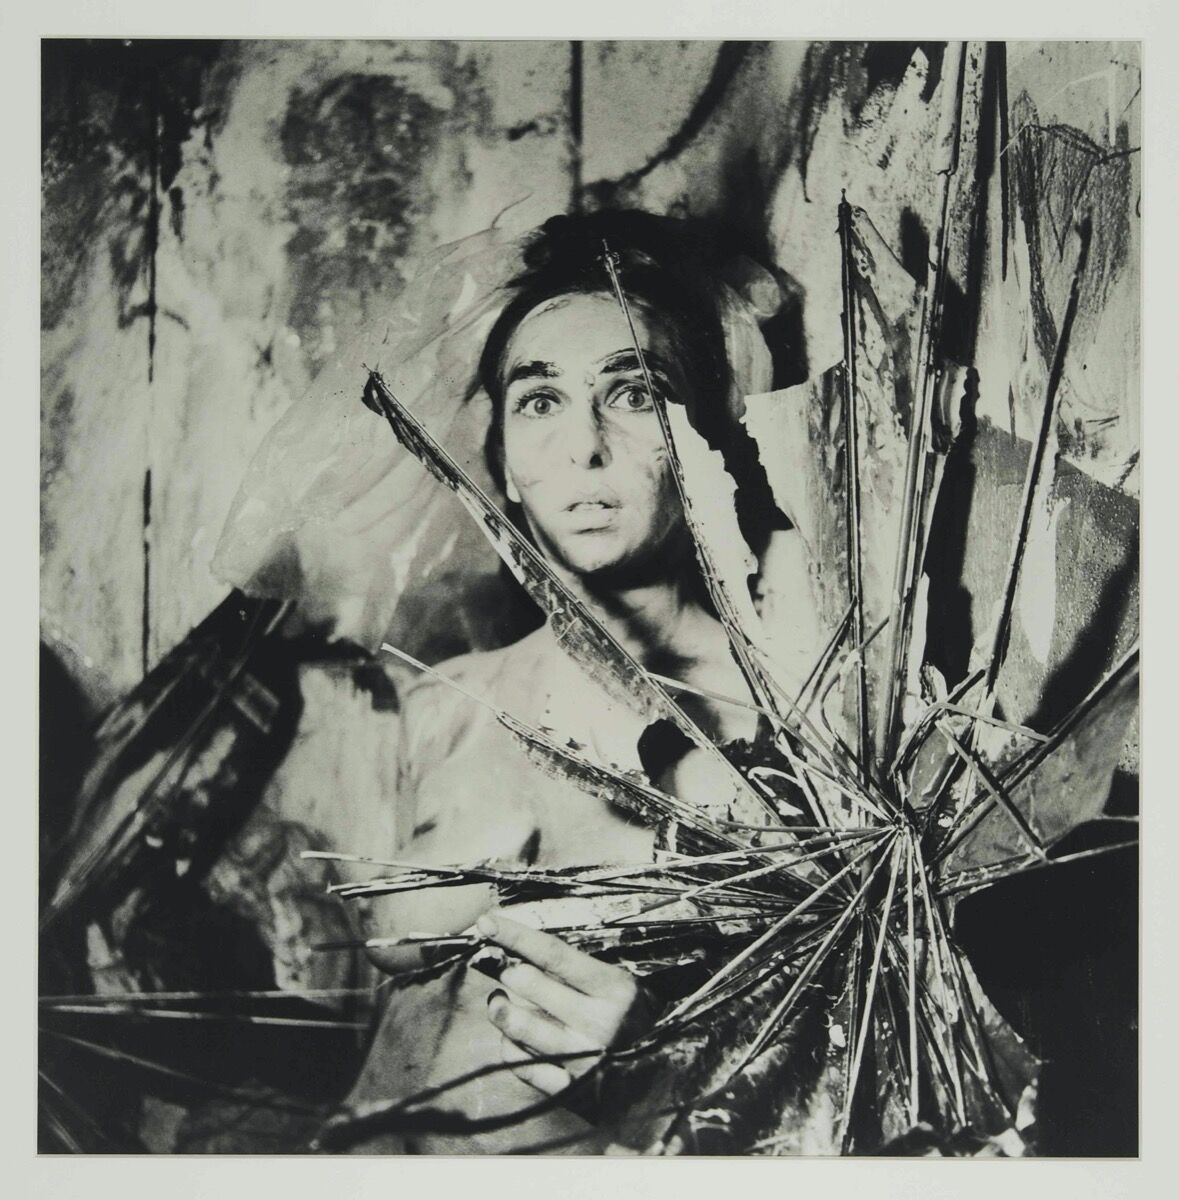 """Carolee Schneemann, from the series """"Eye Body: 36 Transformative Actions for Camera,"""" 1963 / 2005. © Carolee Schneemann. Courtesy of the Estate of Carolee Schneemann, Galerie Lelong & Co., Hales Gallery, and P•P•O•W, New York."""